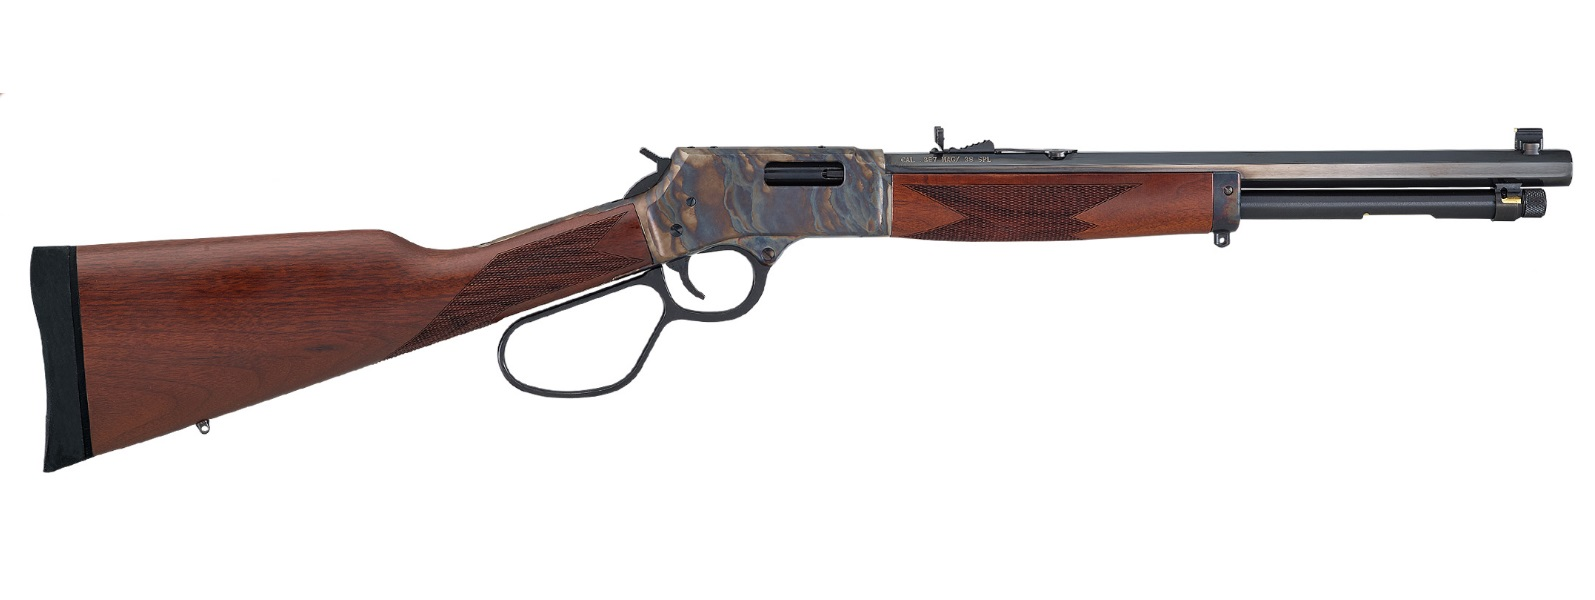 Henry Repeating Arms Big Boy Steel CCH 357 Magnum   38 Special